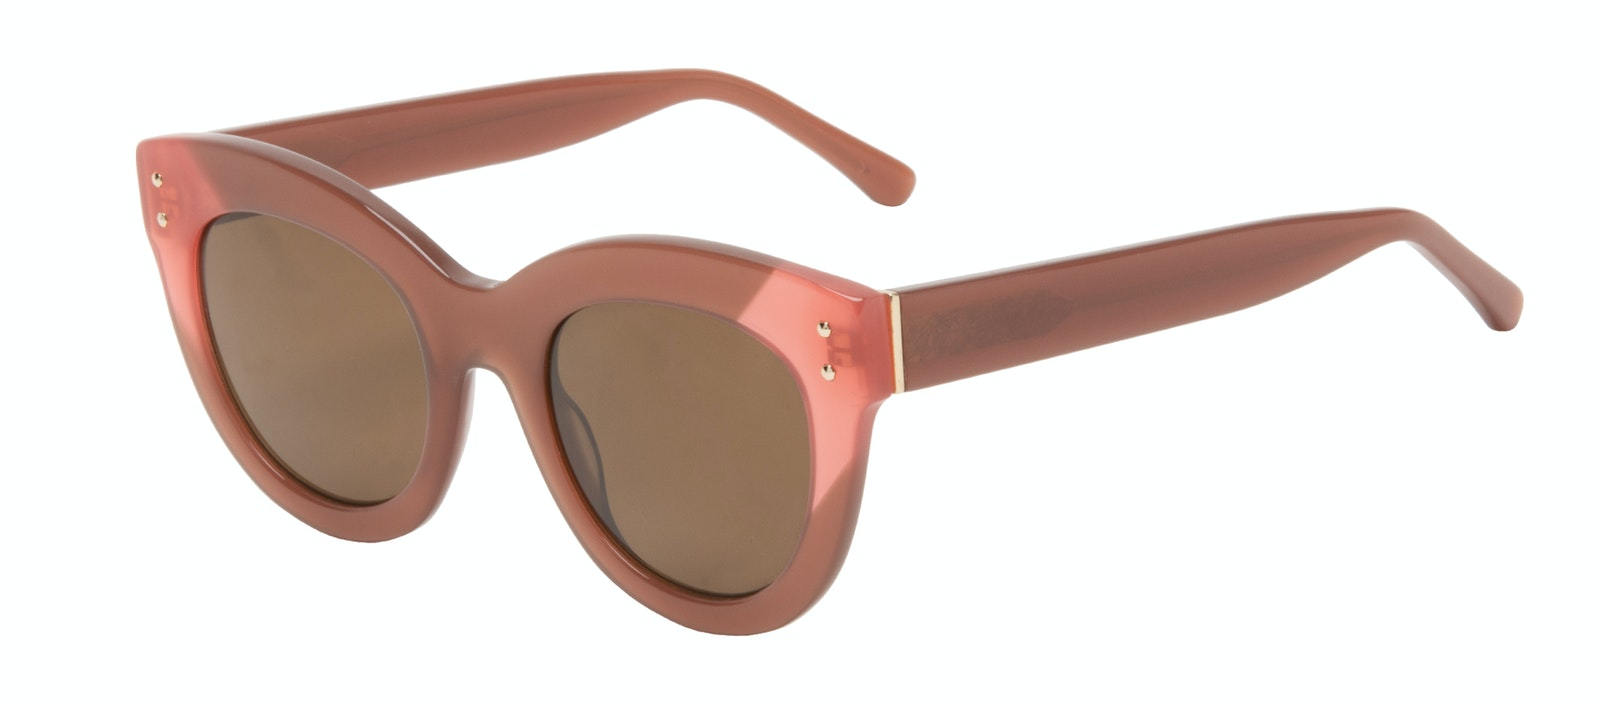 Affordable Fashion Glasses Cat Eye Sunglasses Women Groove Toffee Tilt